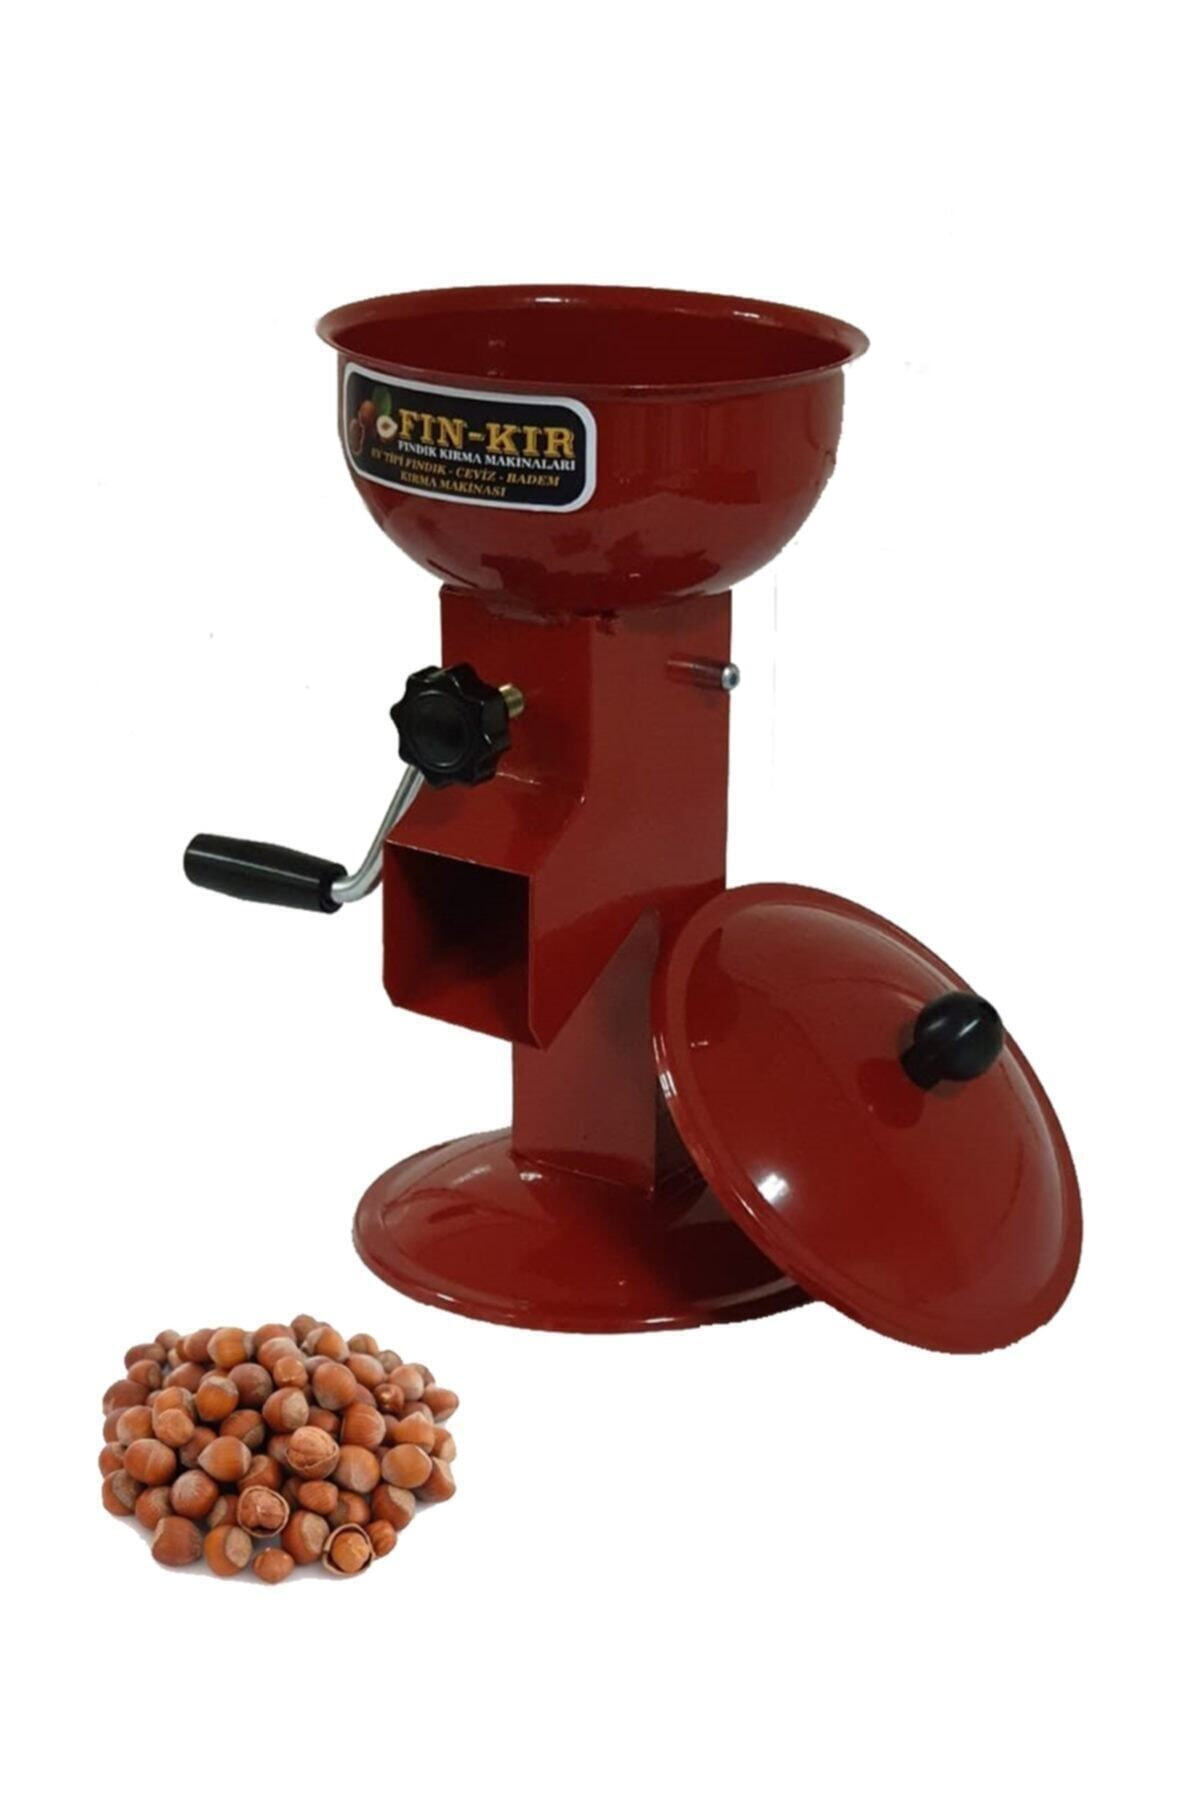 Nuts Nuts and Crackers Vegetable Tools Kitchen Utensils Gadgets Metal Kitchen Utensils Tools Nutcracker Turkey High Quality